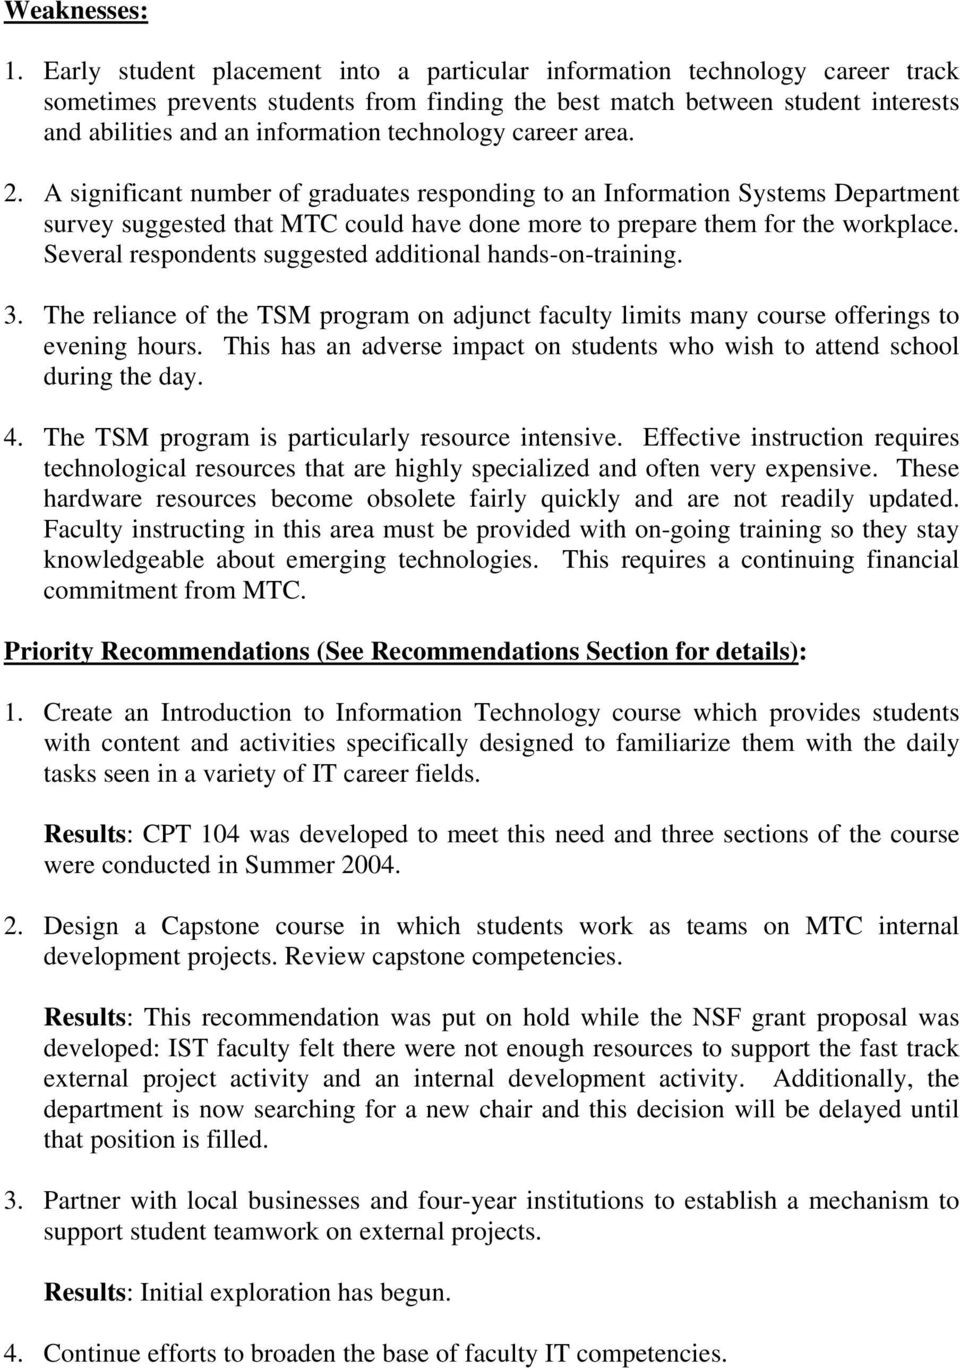 technology career area. 2. A significant number of graduates responding to an Information Systems Department survey suggested that MTC could have done more to prepare them for the workplace.